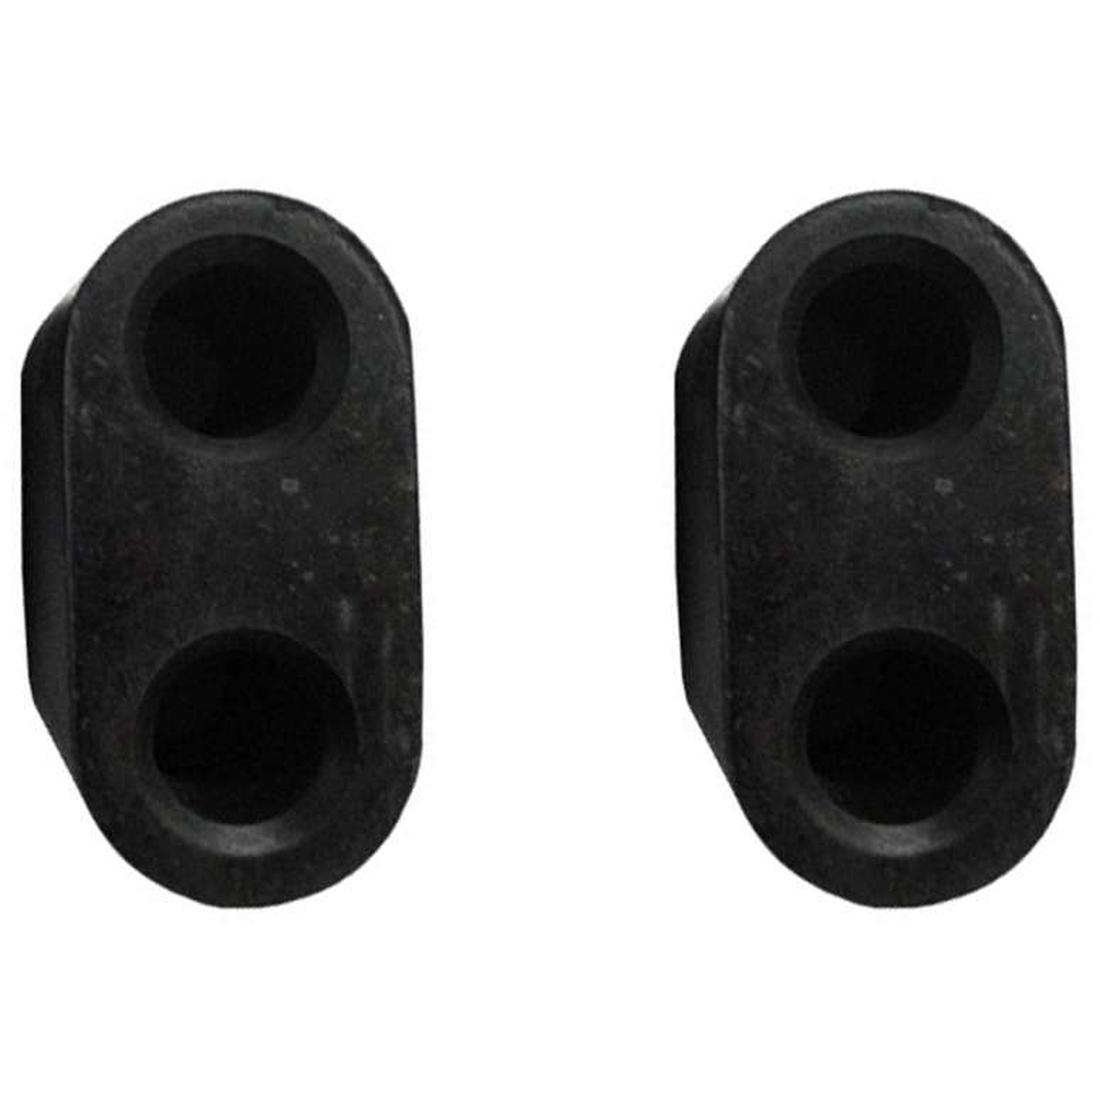 2 x Exhaust Rubber Hanger for Holden VT-VZ Commodore image